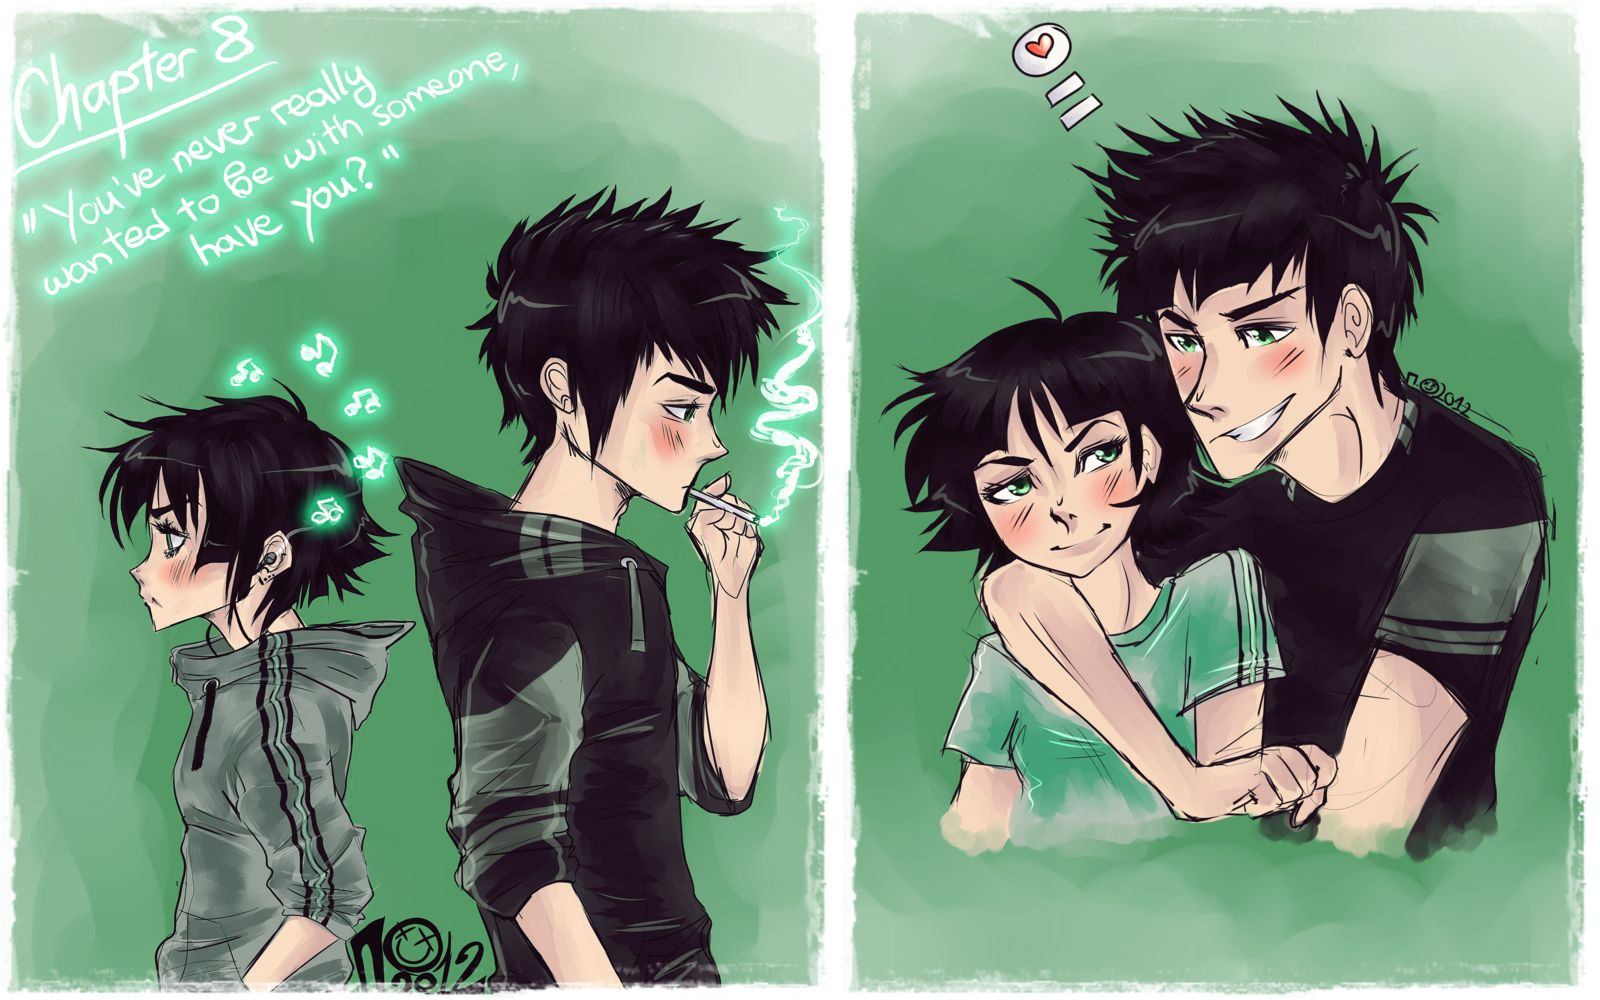 Butch<3buttercup (not by me)